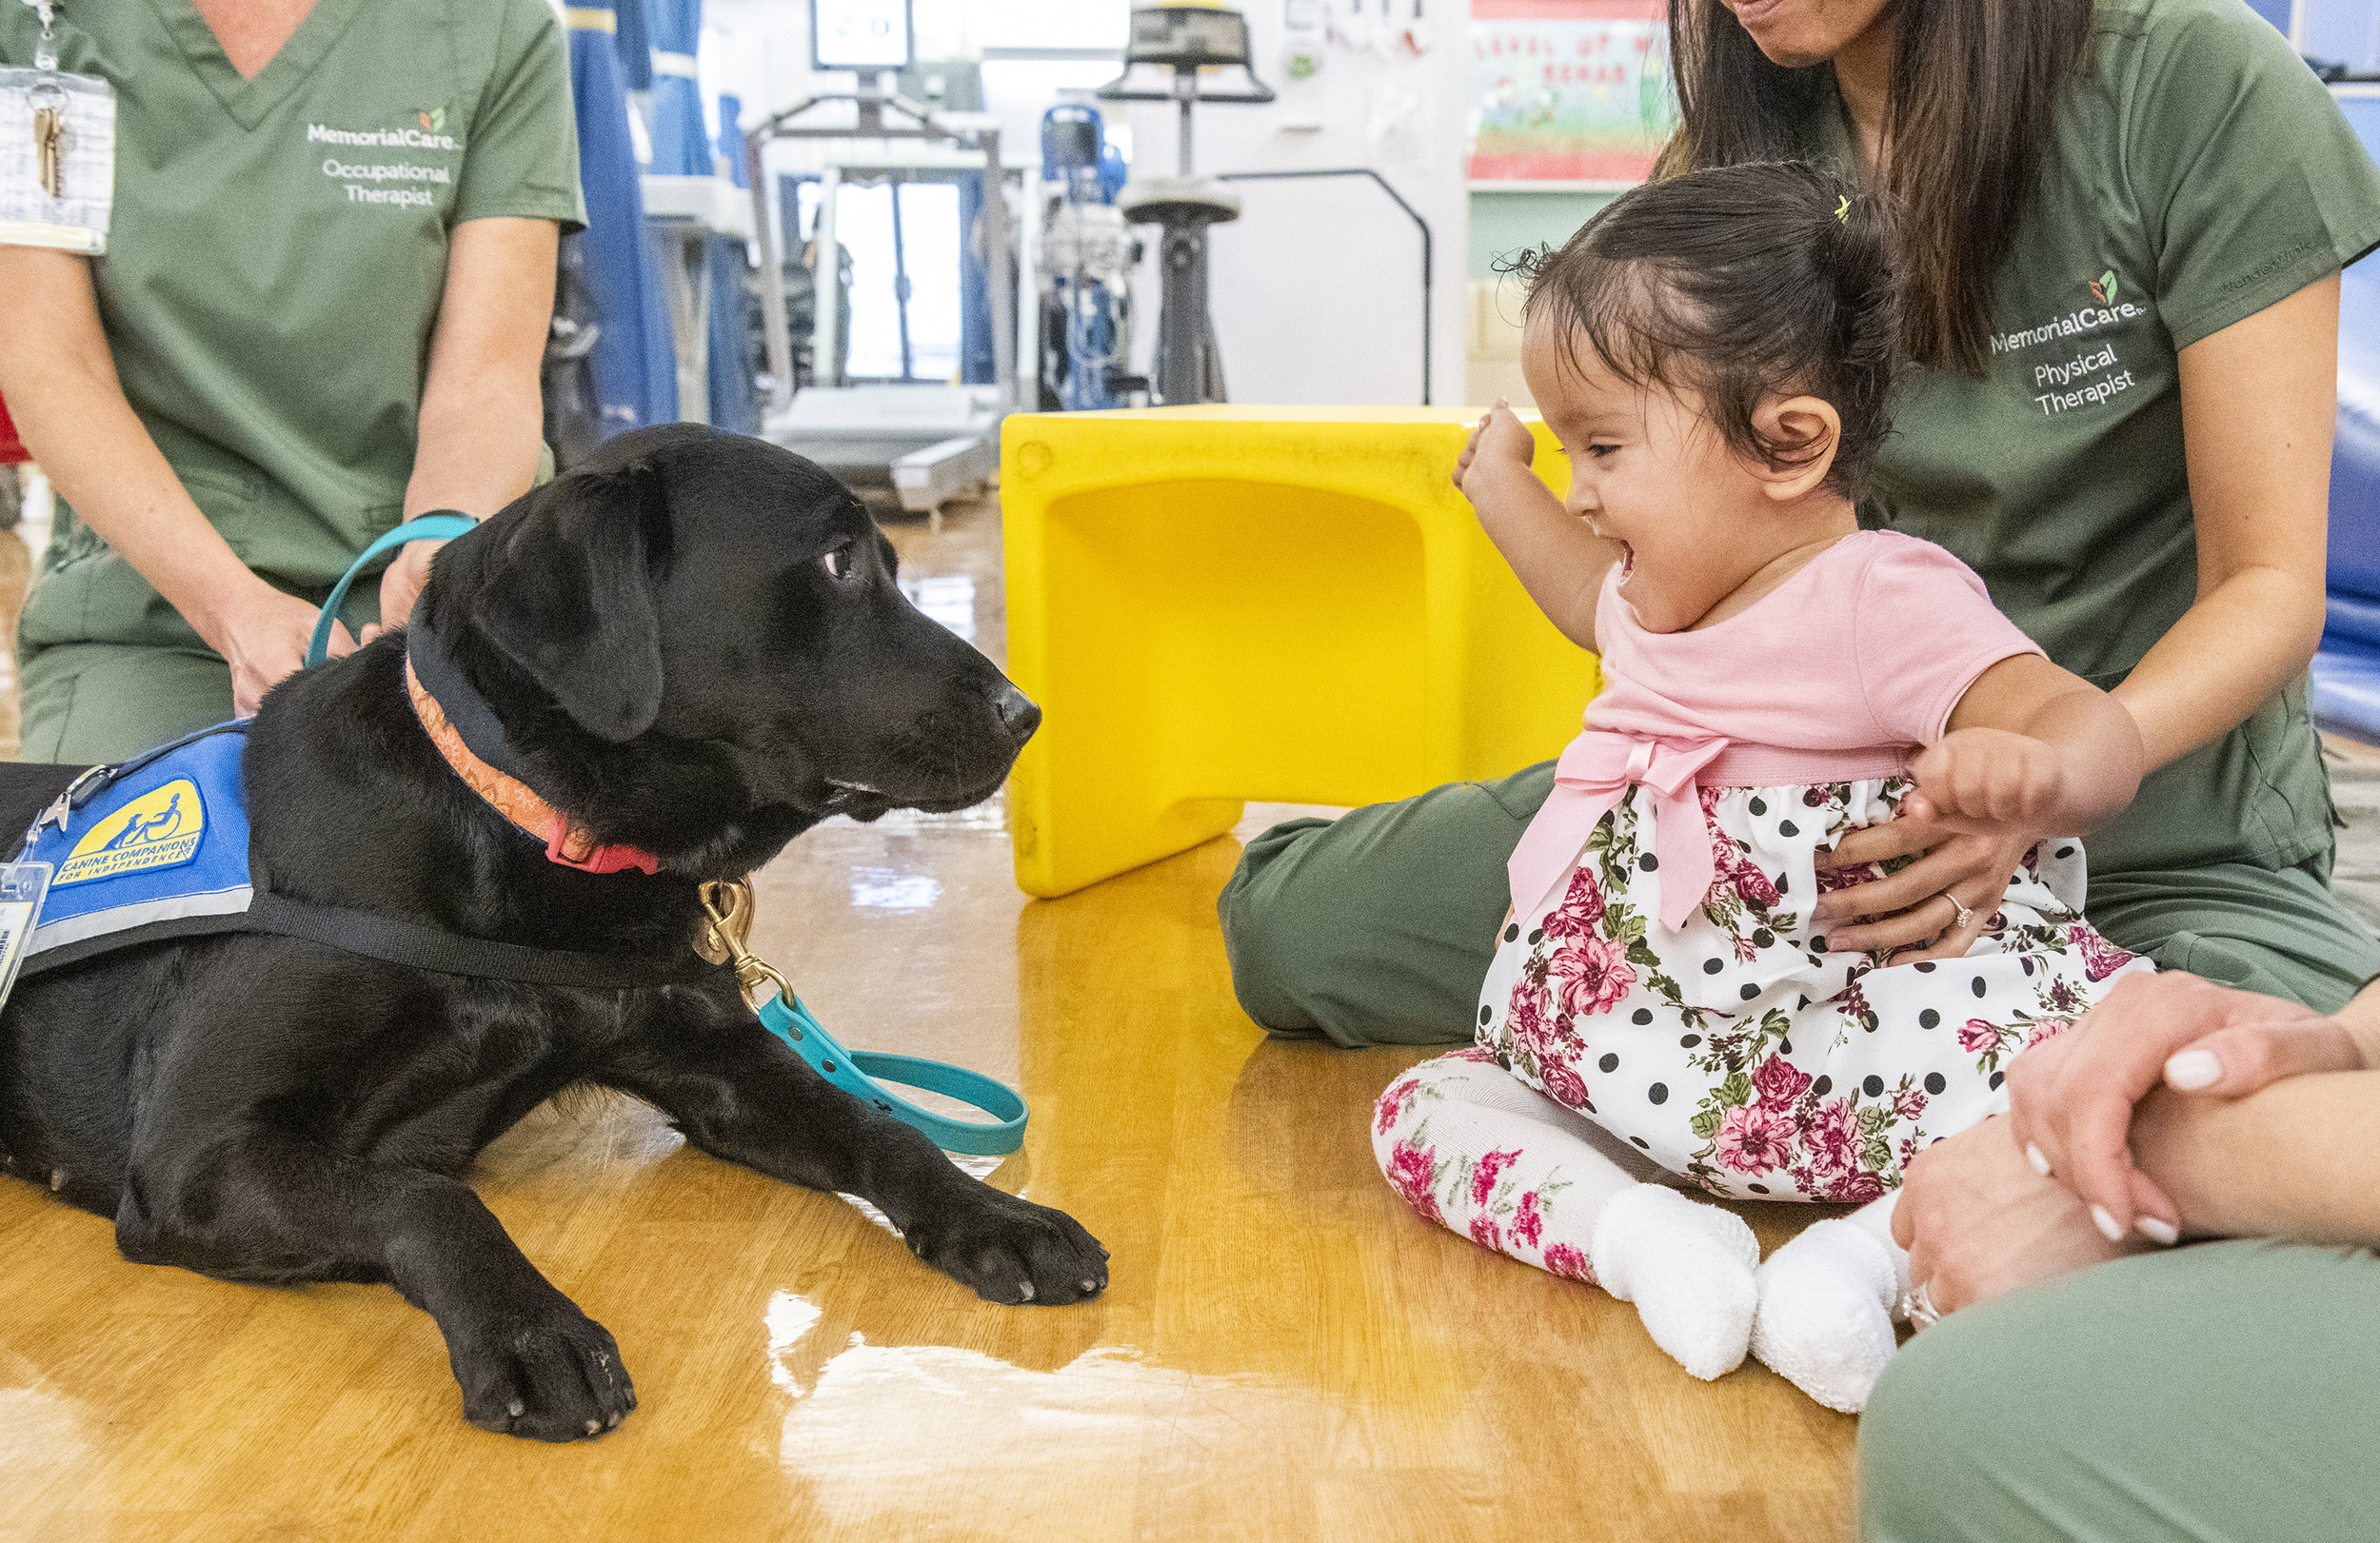 Amanda Perez, 2 of Los Angeles, reacts to Zeta, Facility Dog, during her therapy at Miller Children's & Women's Hospital In Long Beach January 10, 2019. Zeta is the hospitals first full-time Facility Dog.